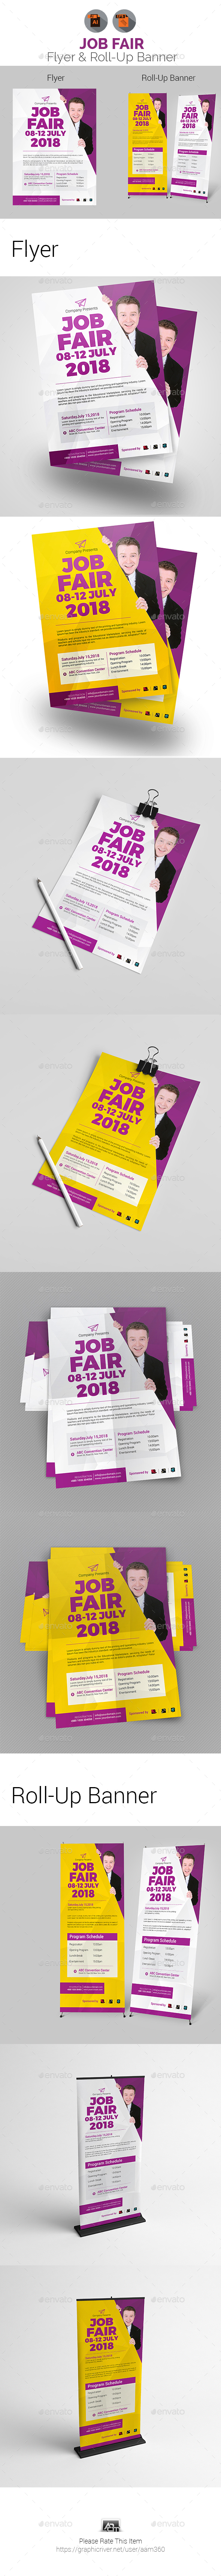 GraphicRiver Job Career Fair Flyer & Roll-Up Banner 20808797